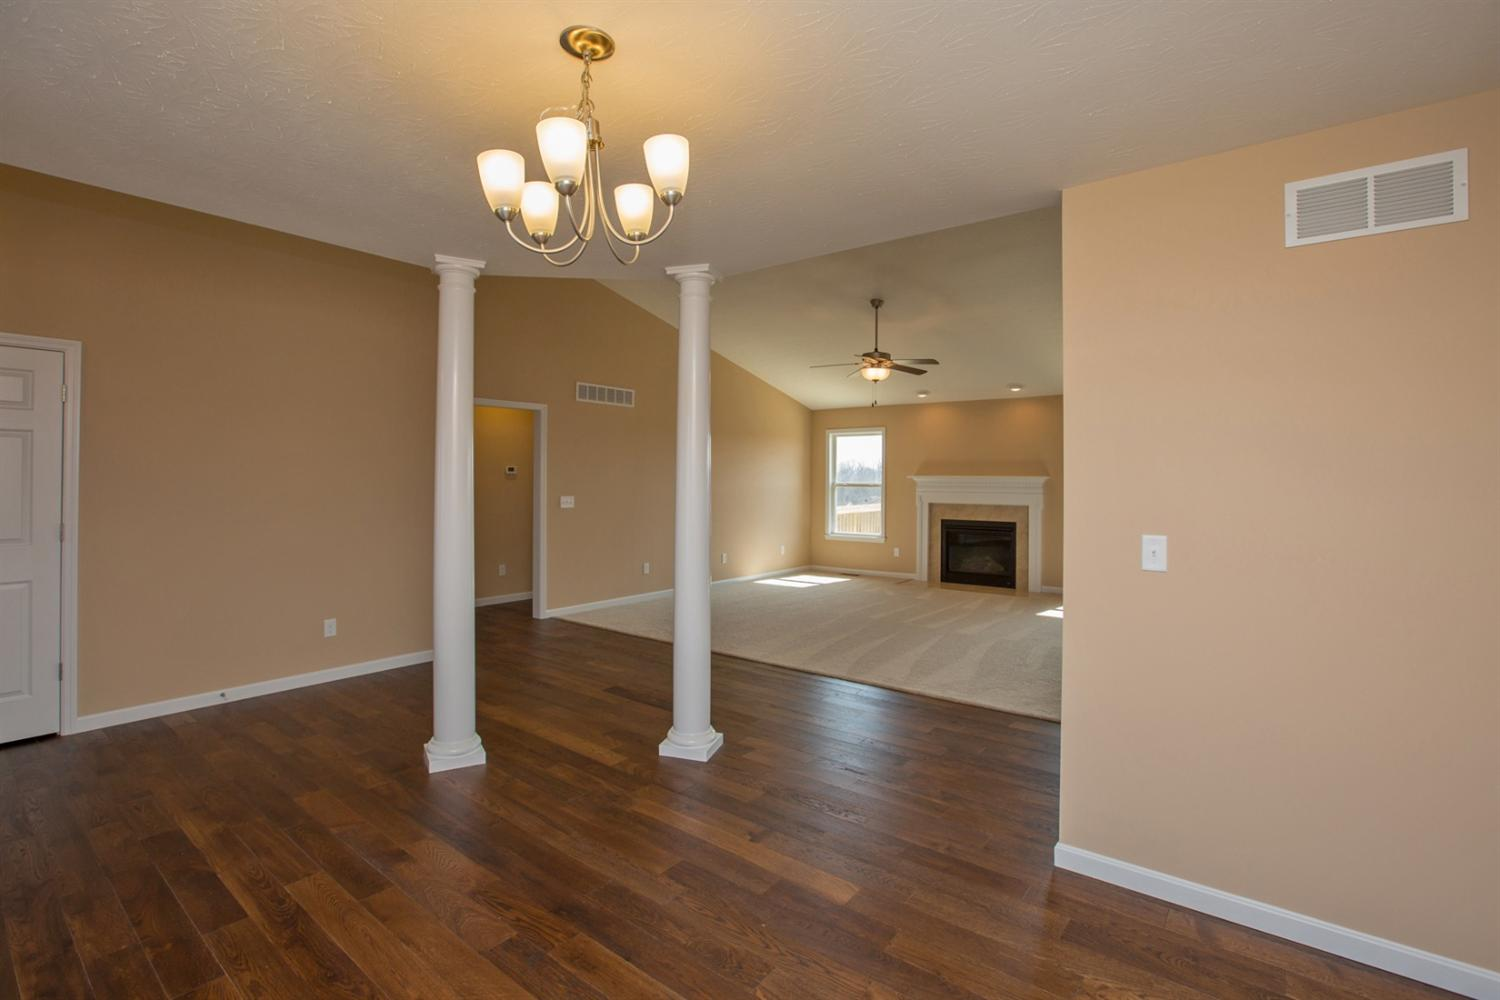 Single Family Residence, Ranch - Liberty Twp, OH (photo 5)